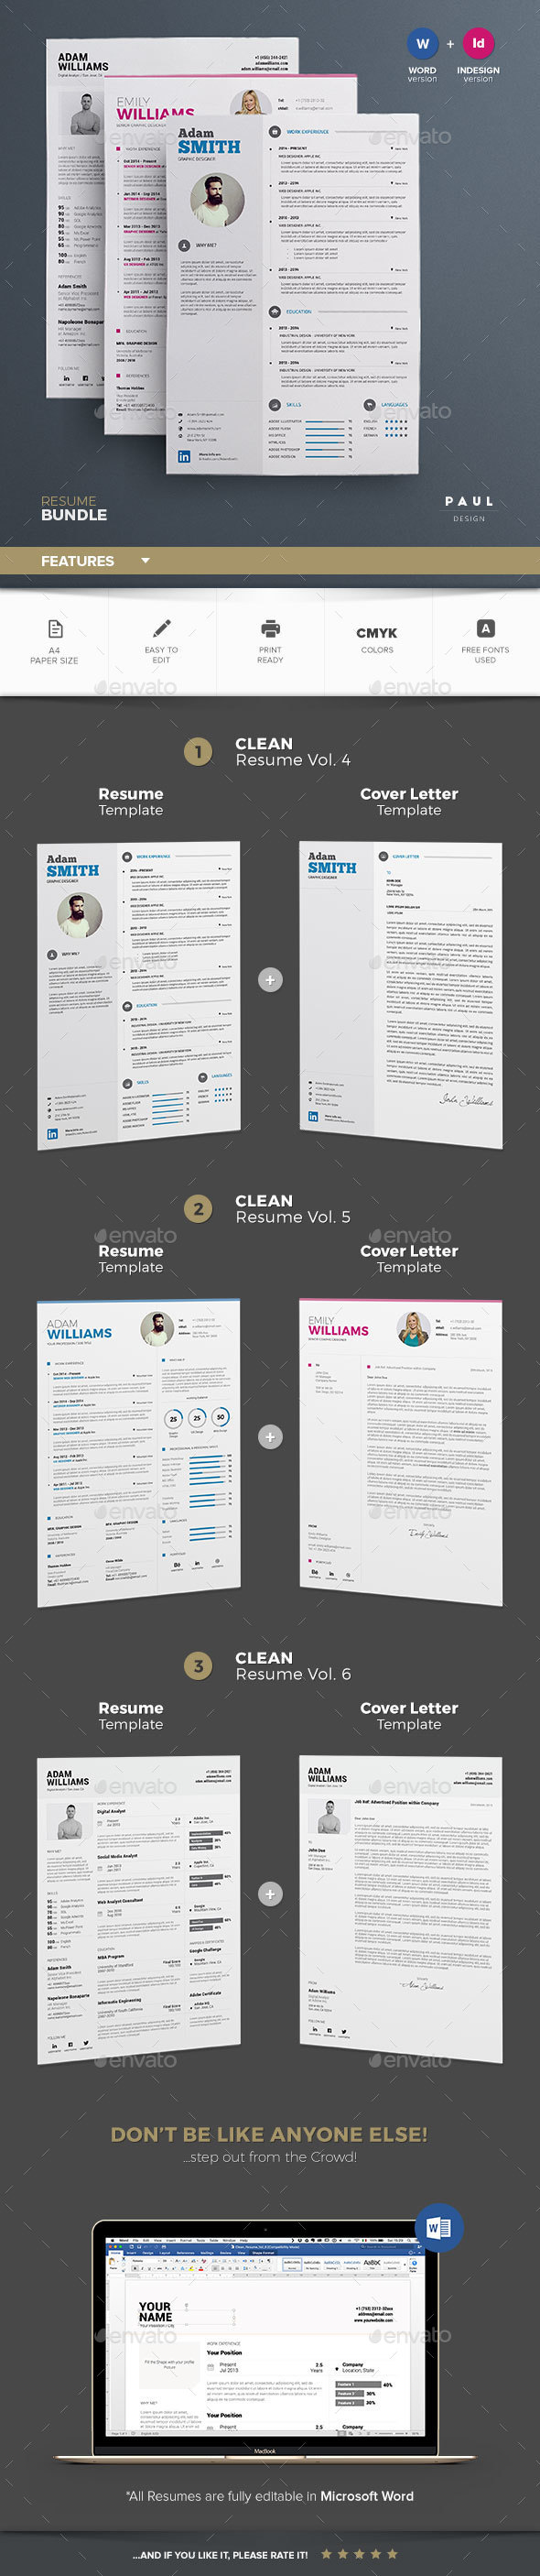 Clean Resume Template PSD, InDesign INDD Bundle. Download here: http ...